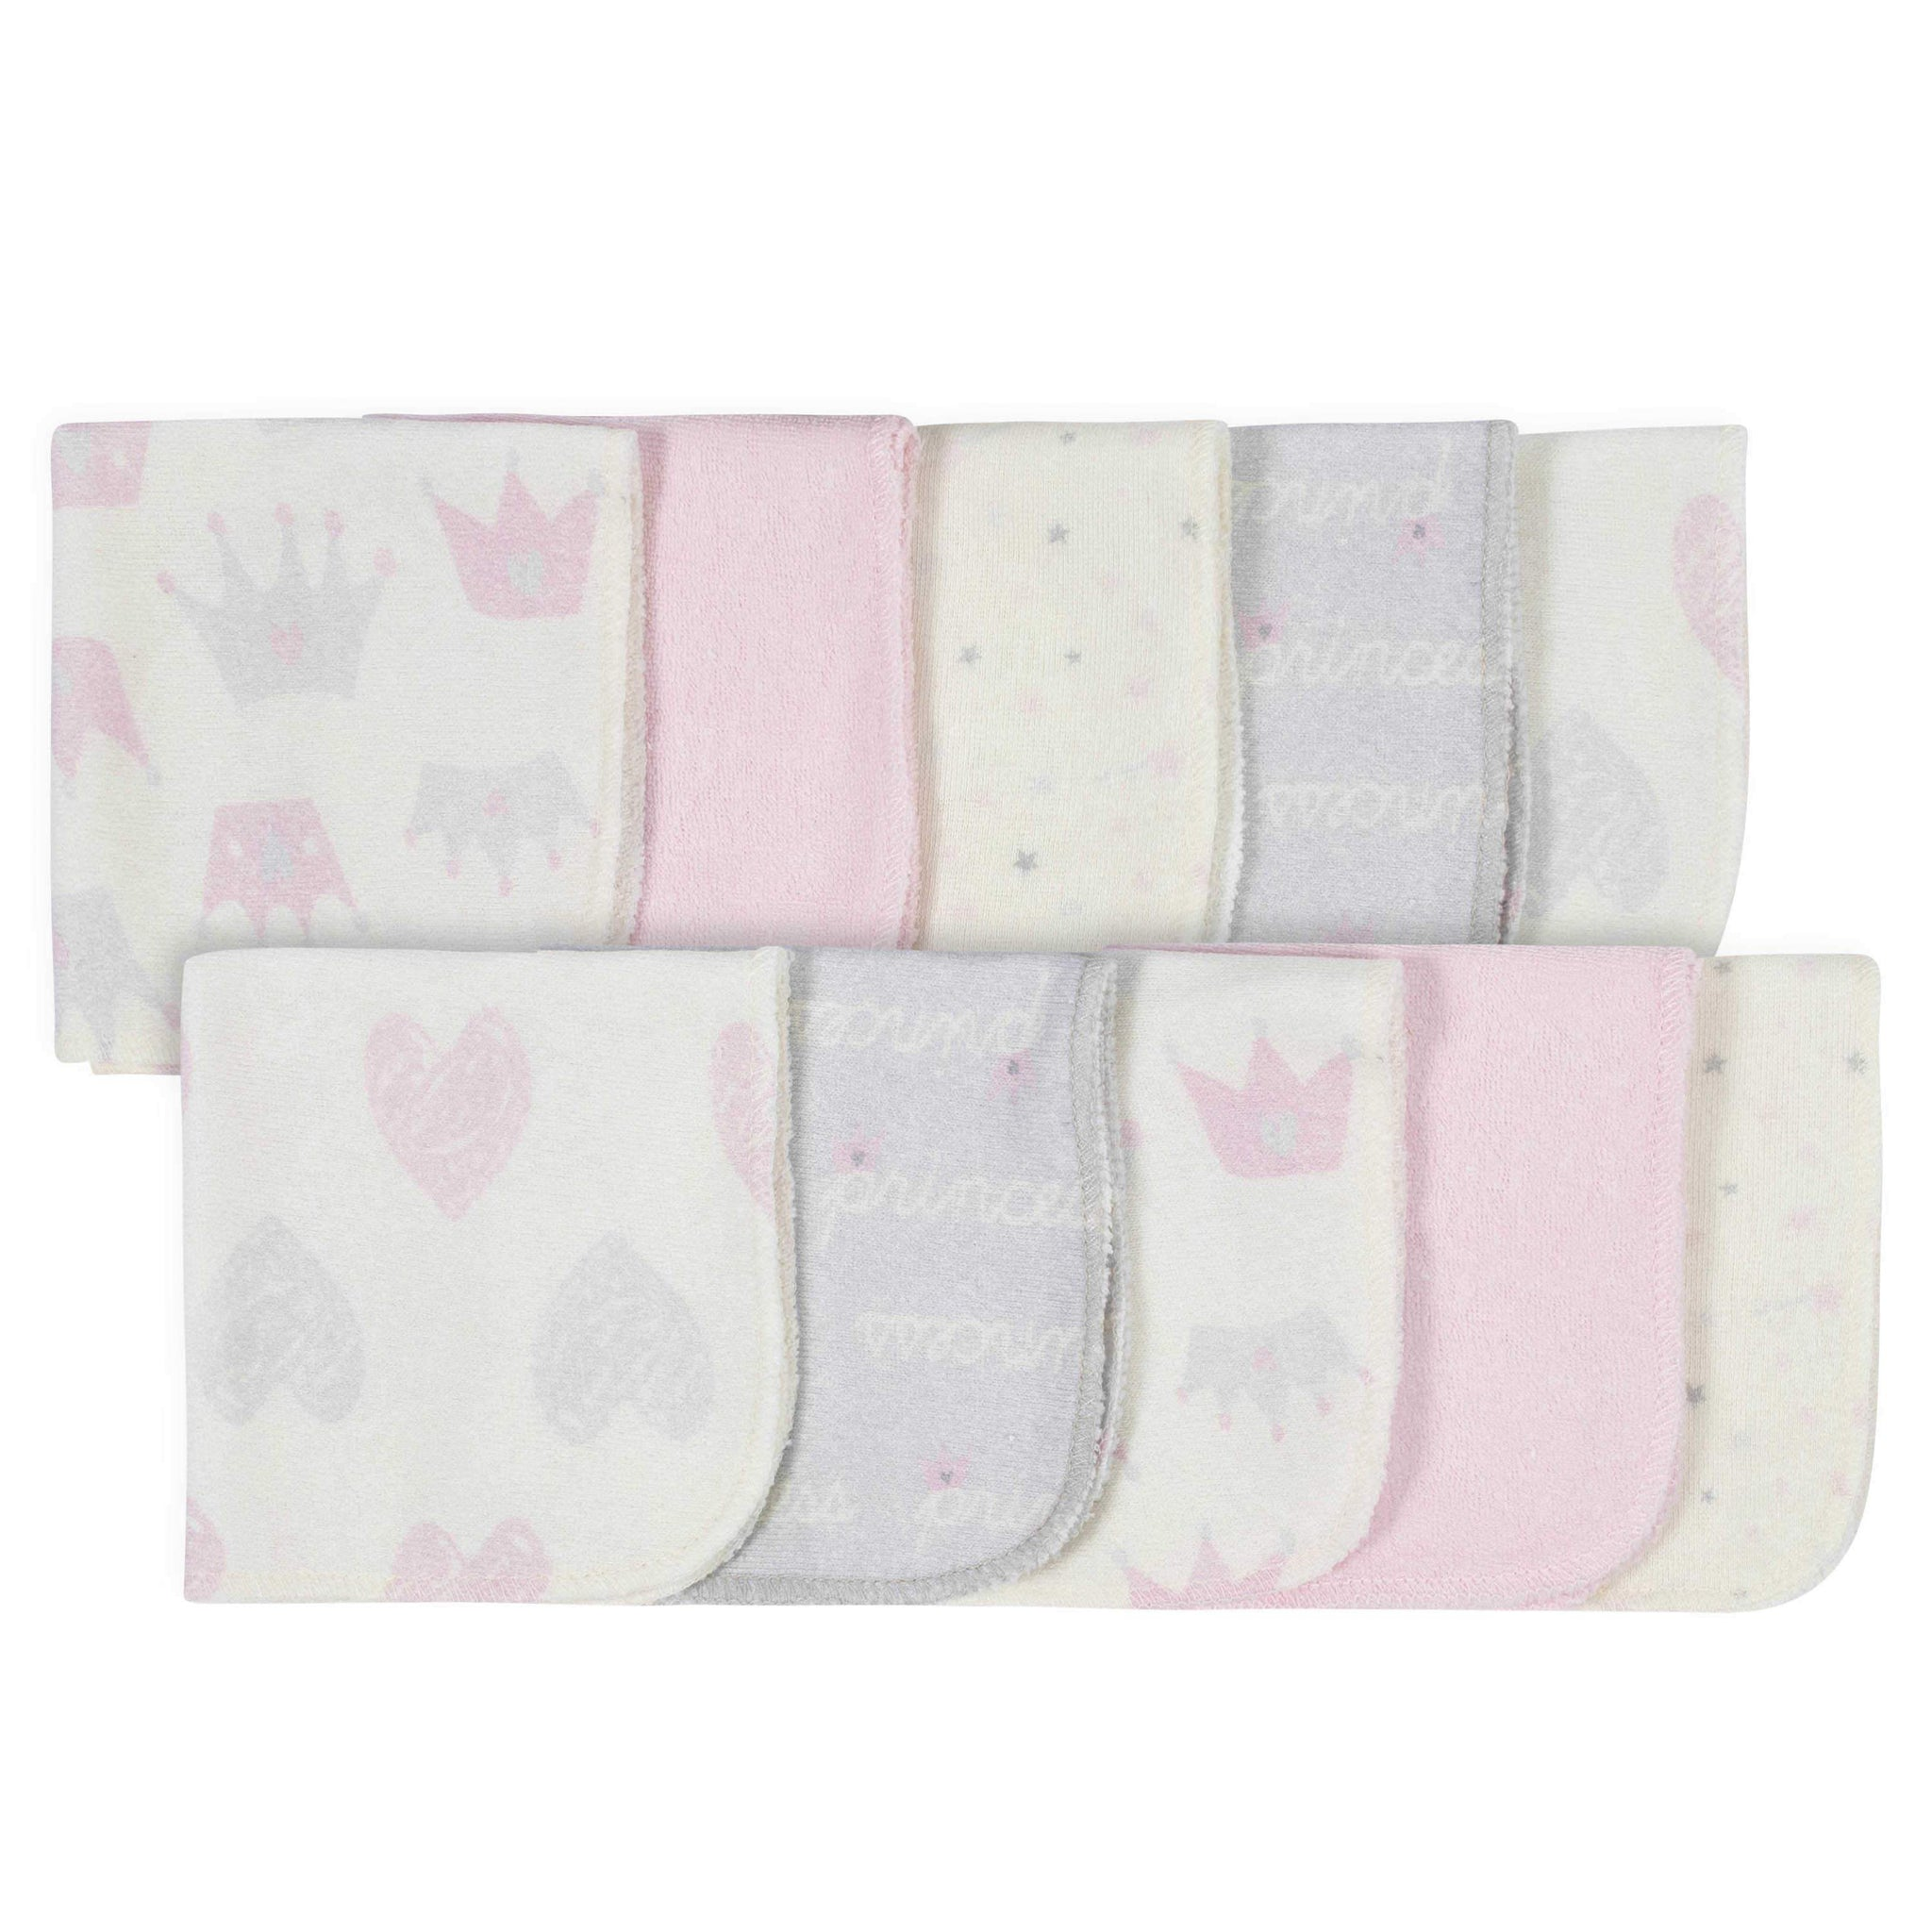 10-Pack Baby Girls' Princess Washcloths